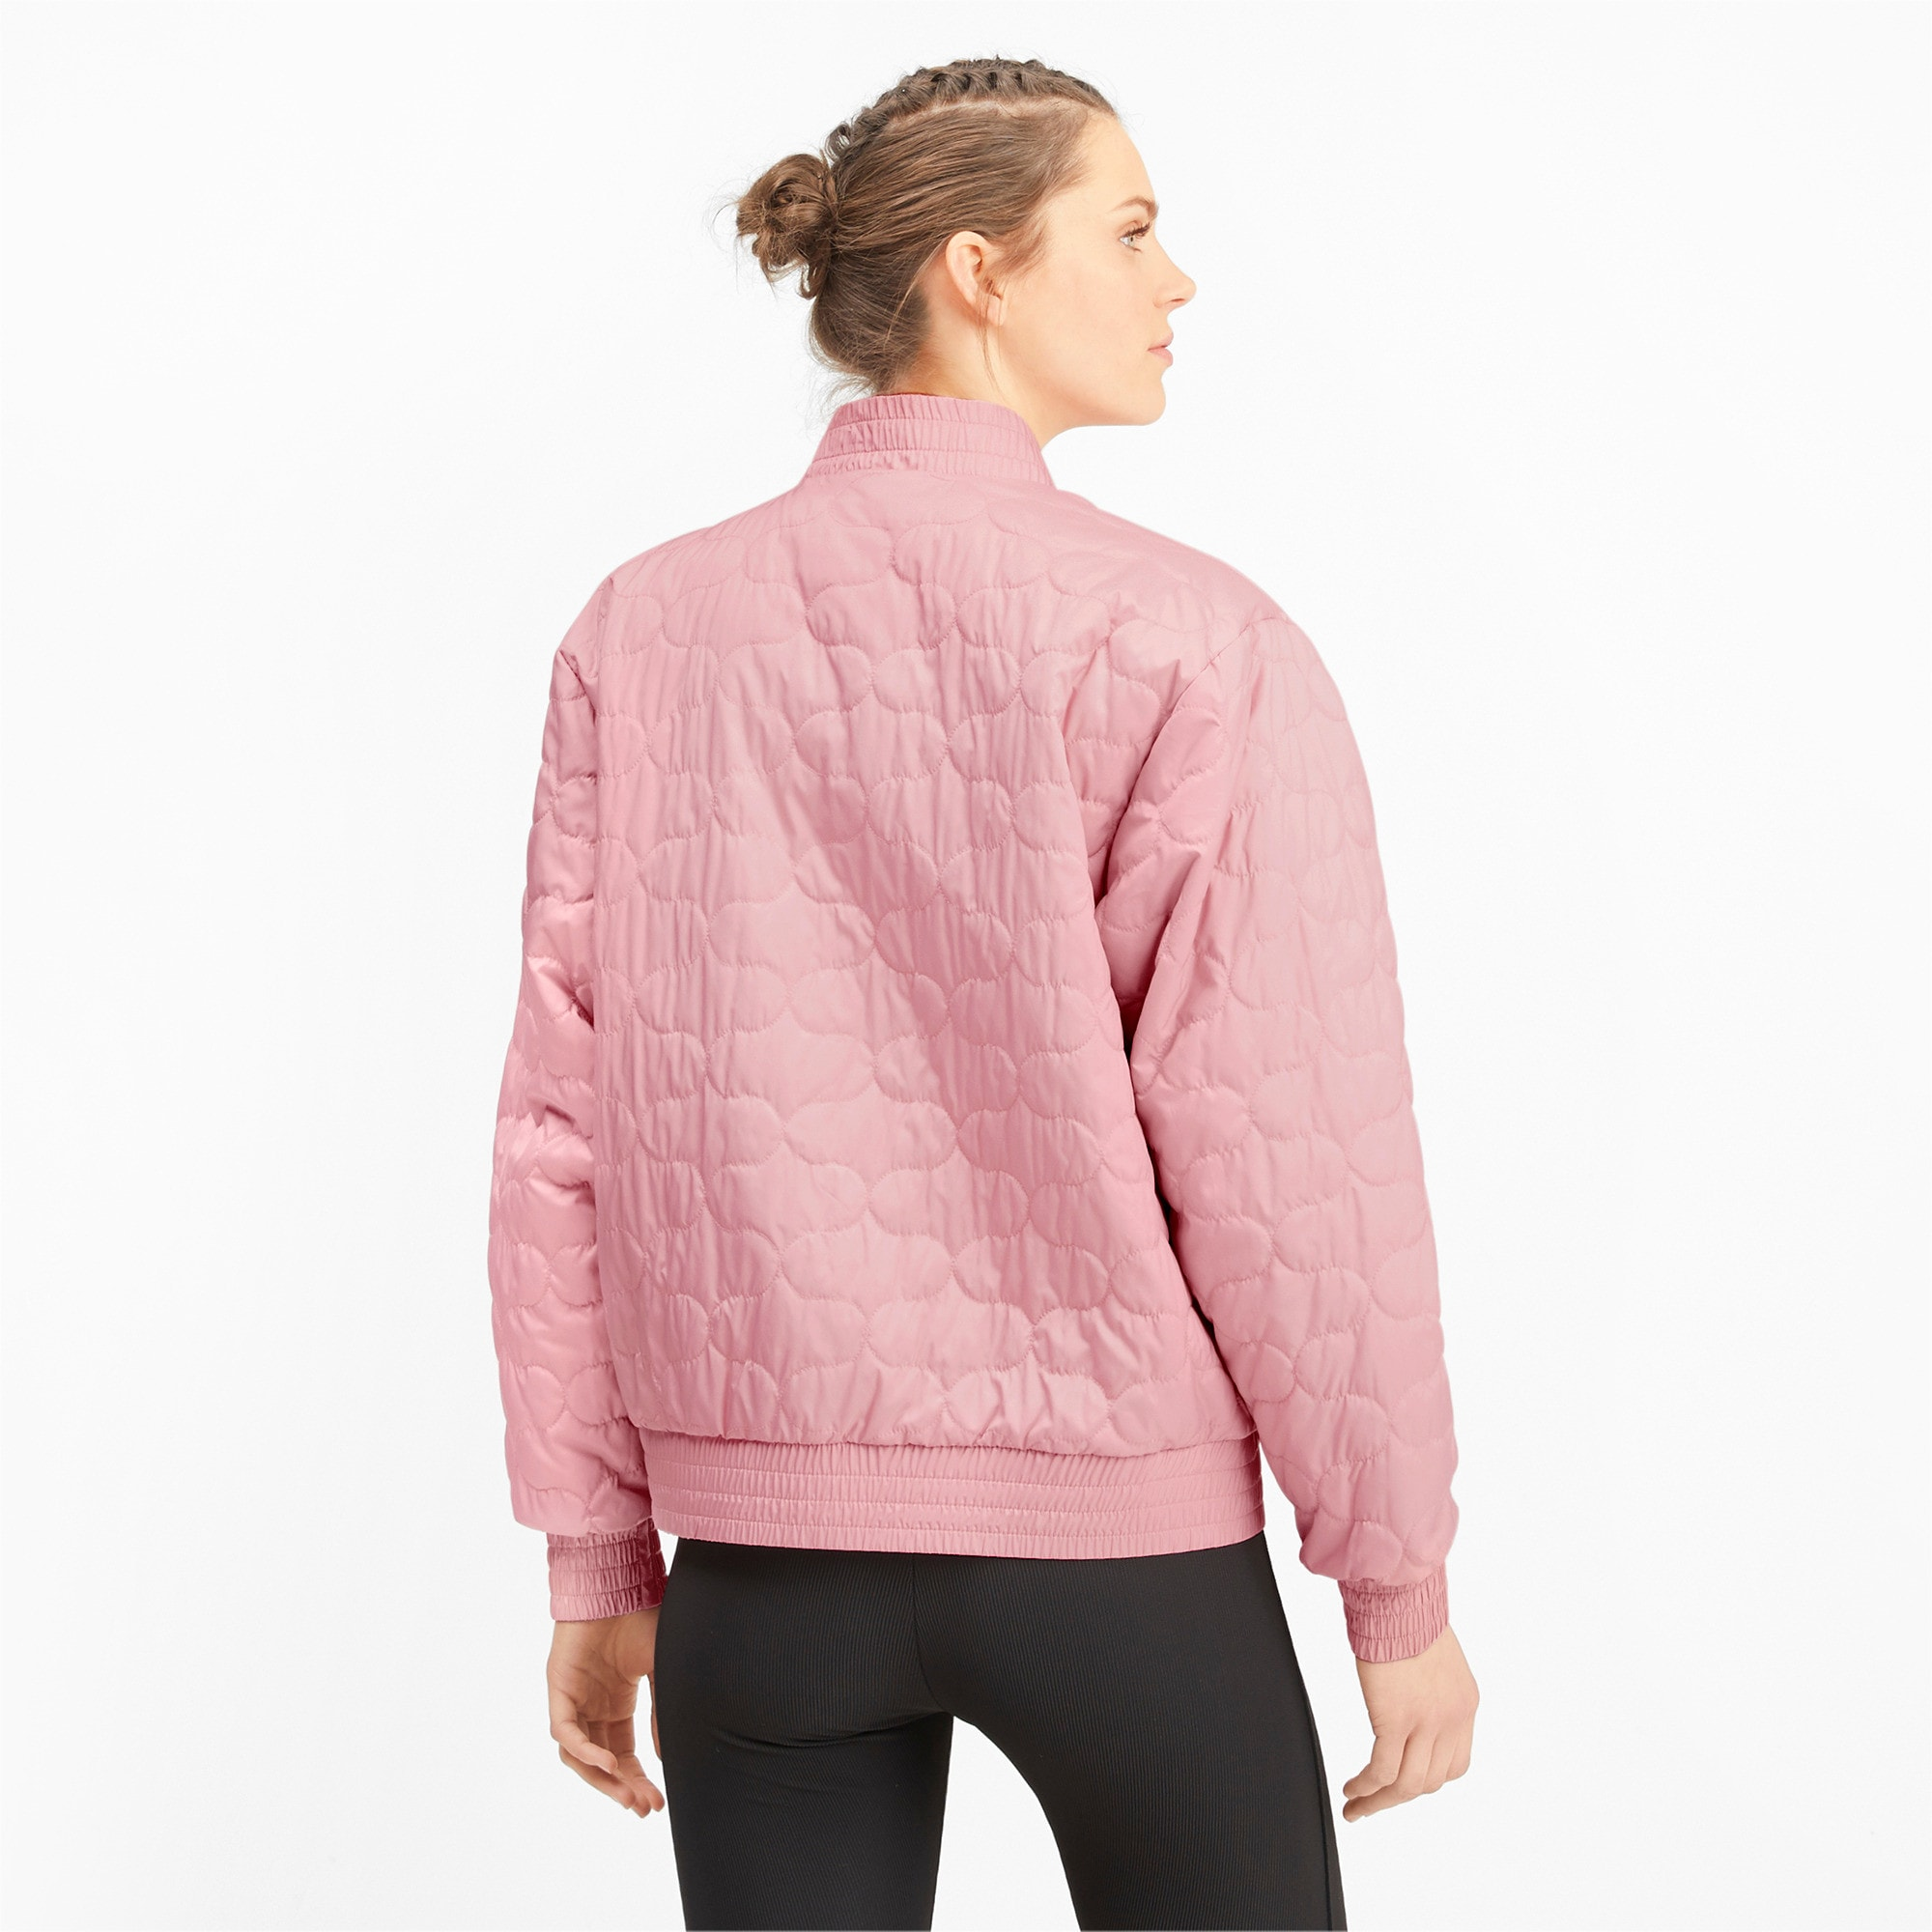 Thumbnail 3 of Woven Women's Bomber Jacket, Bridal Rose, medium